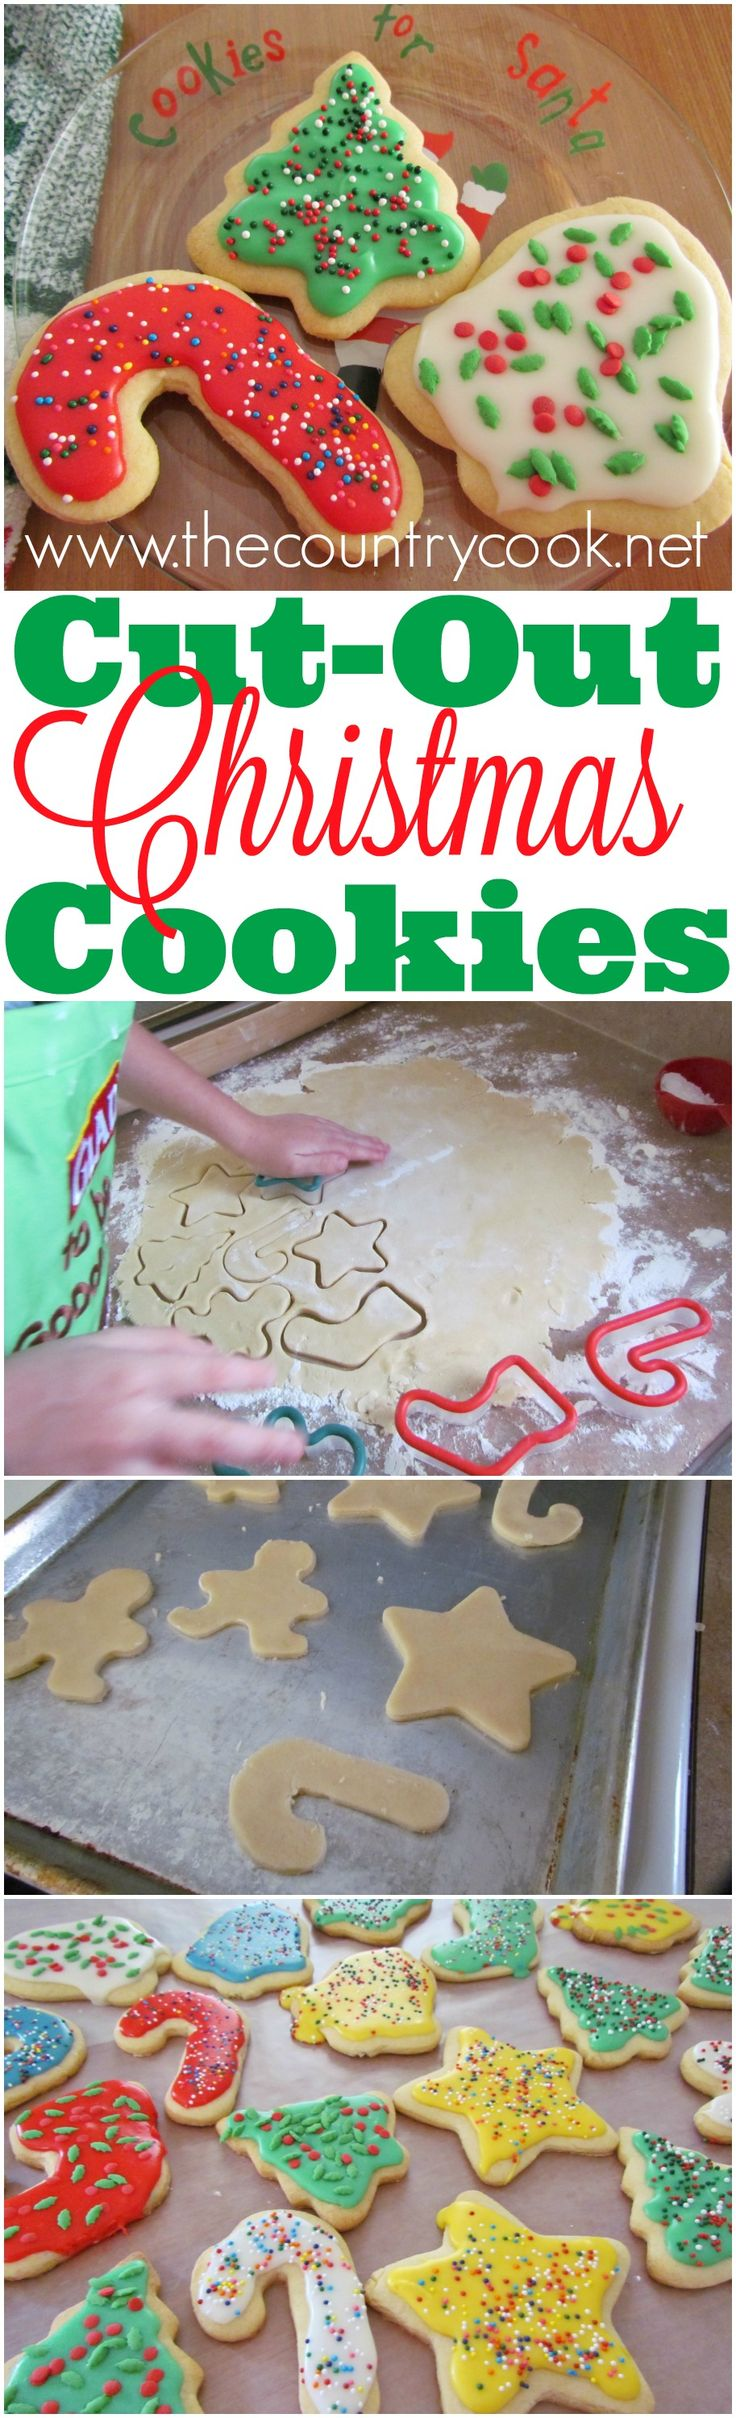 Fail-Proof Cut-Out Sugar Cookies and simple icing recipe from The Country Cook